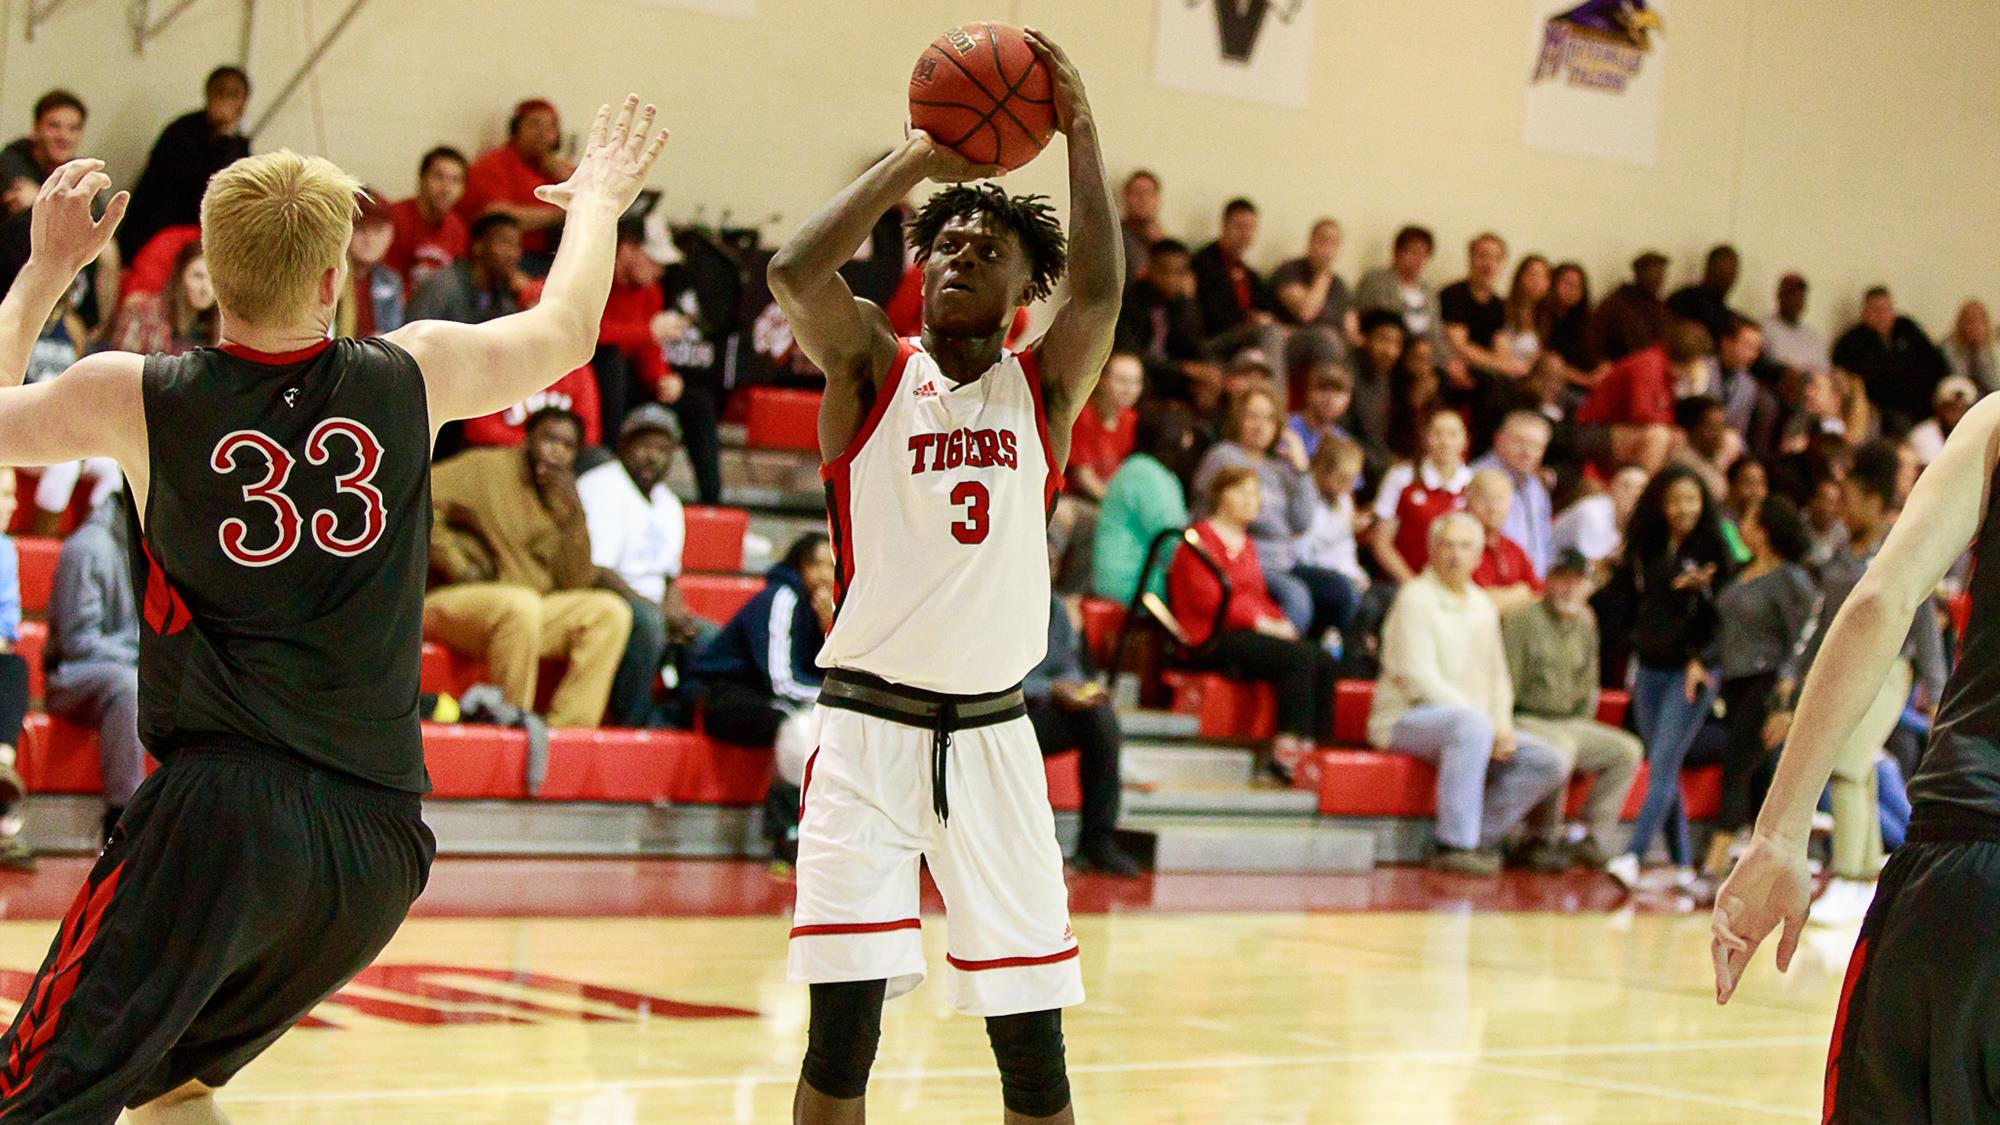 Tigers Hold Back Cbu For 86 67 Victory In Gsc Contest